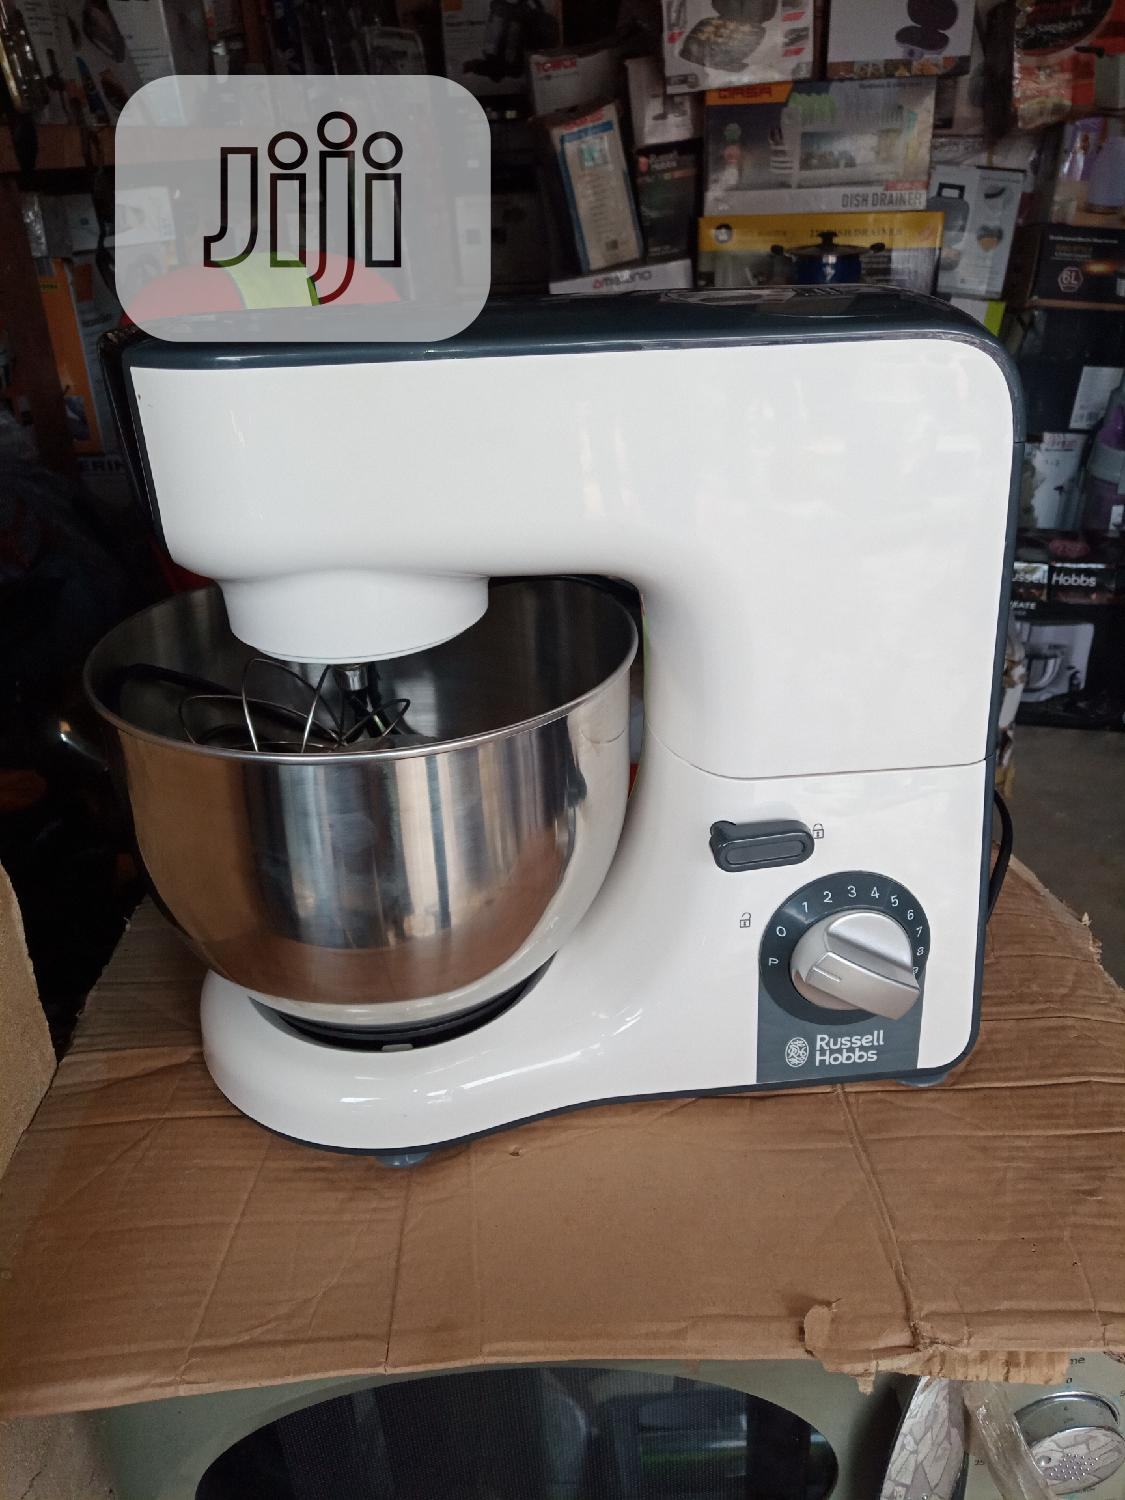 Russell Hobbs 5litres Cake Mixer, 1000watts,With 3 Springles | Kitchen Appliances for sale in Ojo, Lagos State, Nigeria